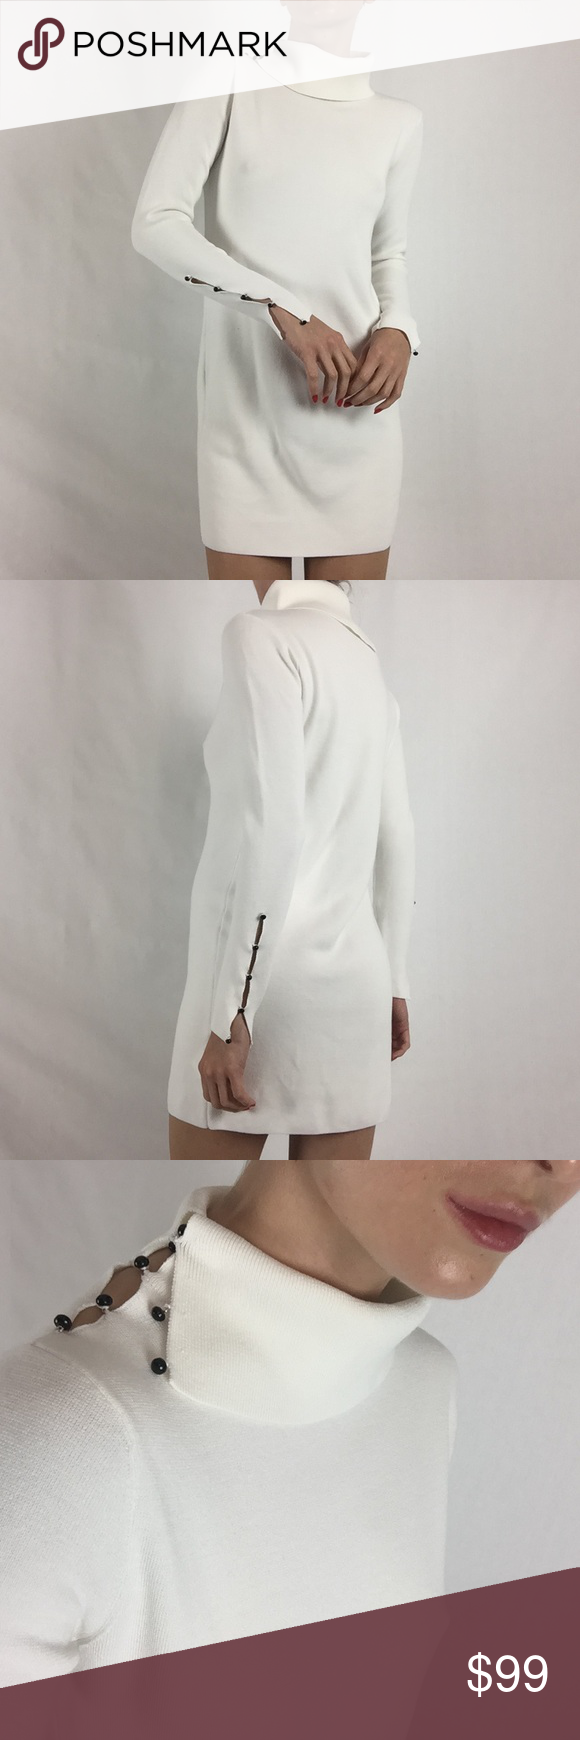 3285124e45 Club Monaco white cowl neck sweater dress White cowl neck sweater dress  with black button details around the shoulder and wrists from Club Monaco  Club ...